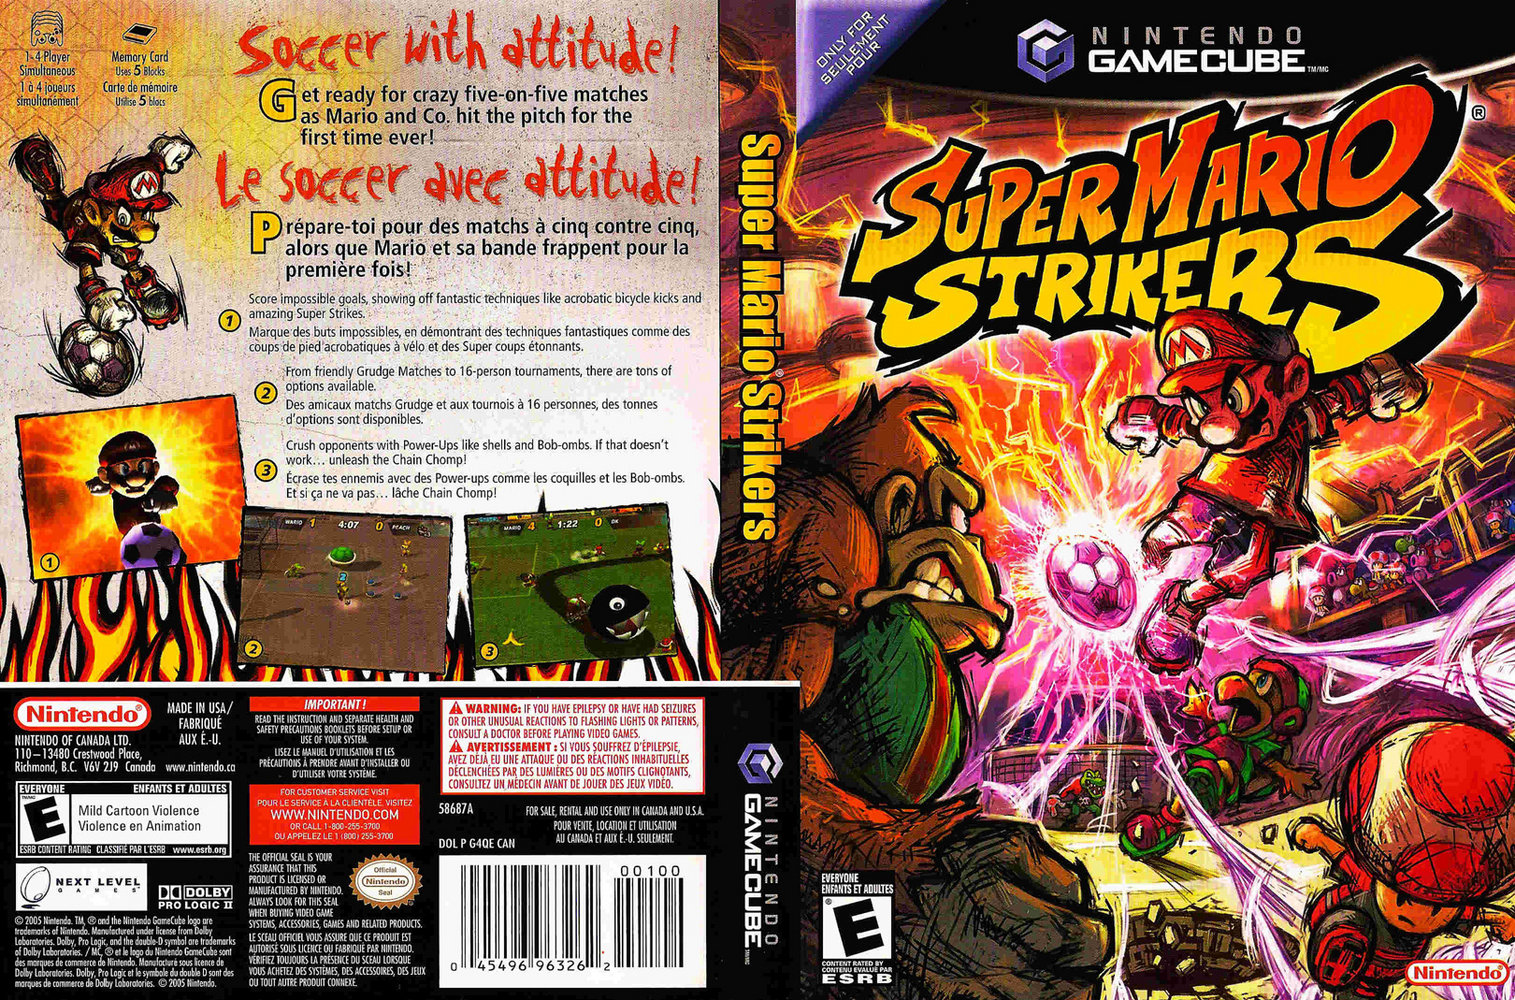 super mario strikers gamecube iso pal